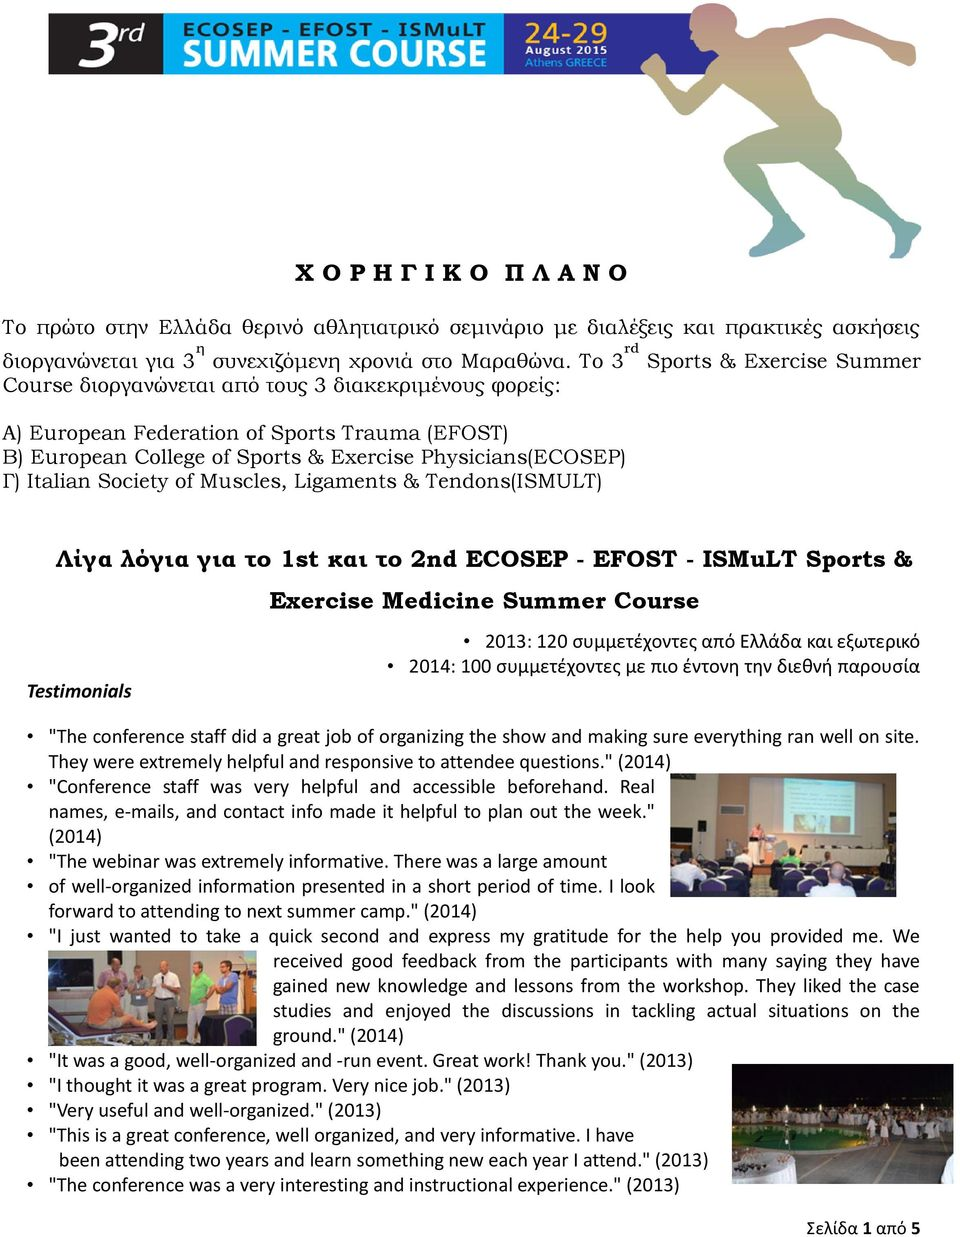 Italian Society of Muscles, Ligaments & Tendons(ISMULT) Λίγα λόγια για το 1st και το 2nd ECOSEP - EFOST - ISMuLT Sports & Testimonials Exercise Medicine Summer Course 2013: 120 συμμετέχοντες από